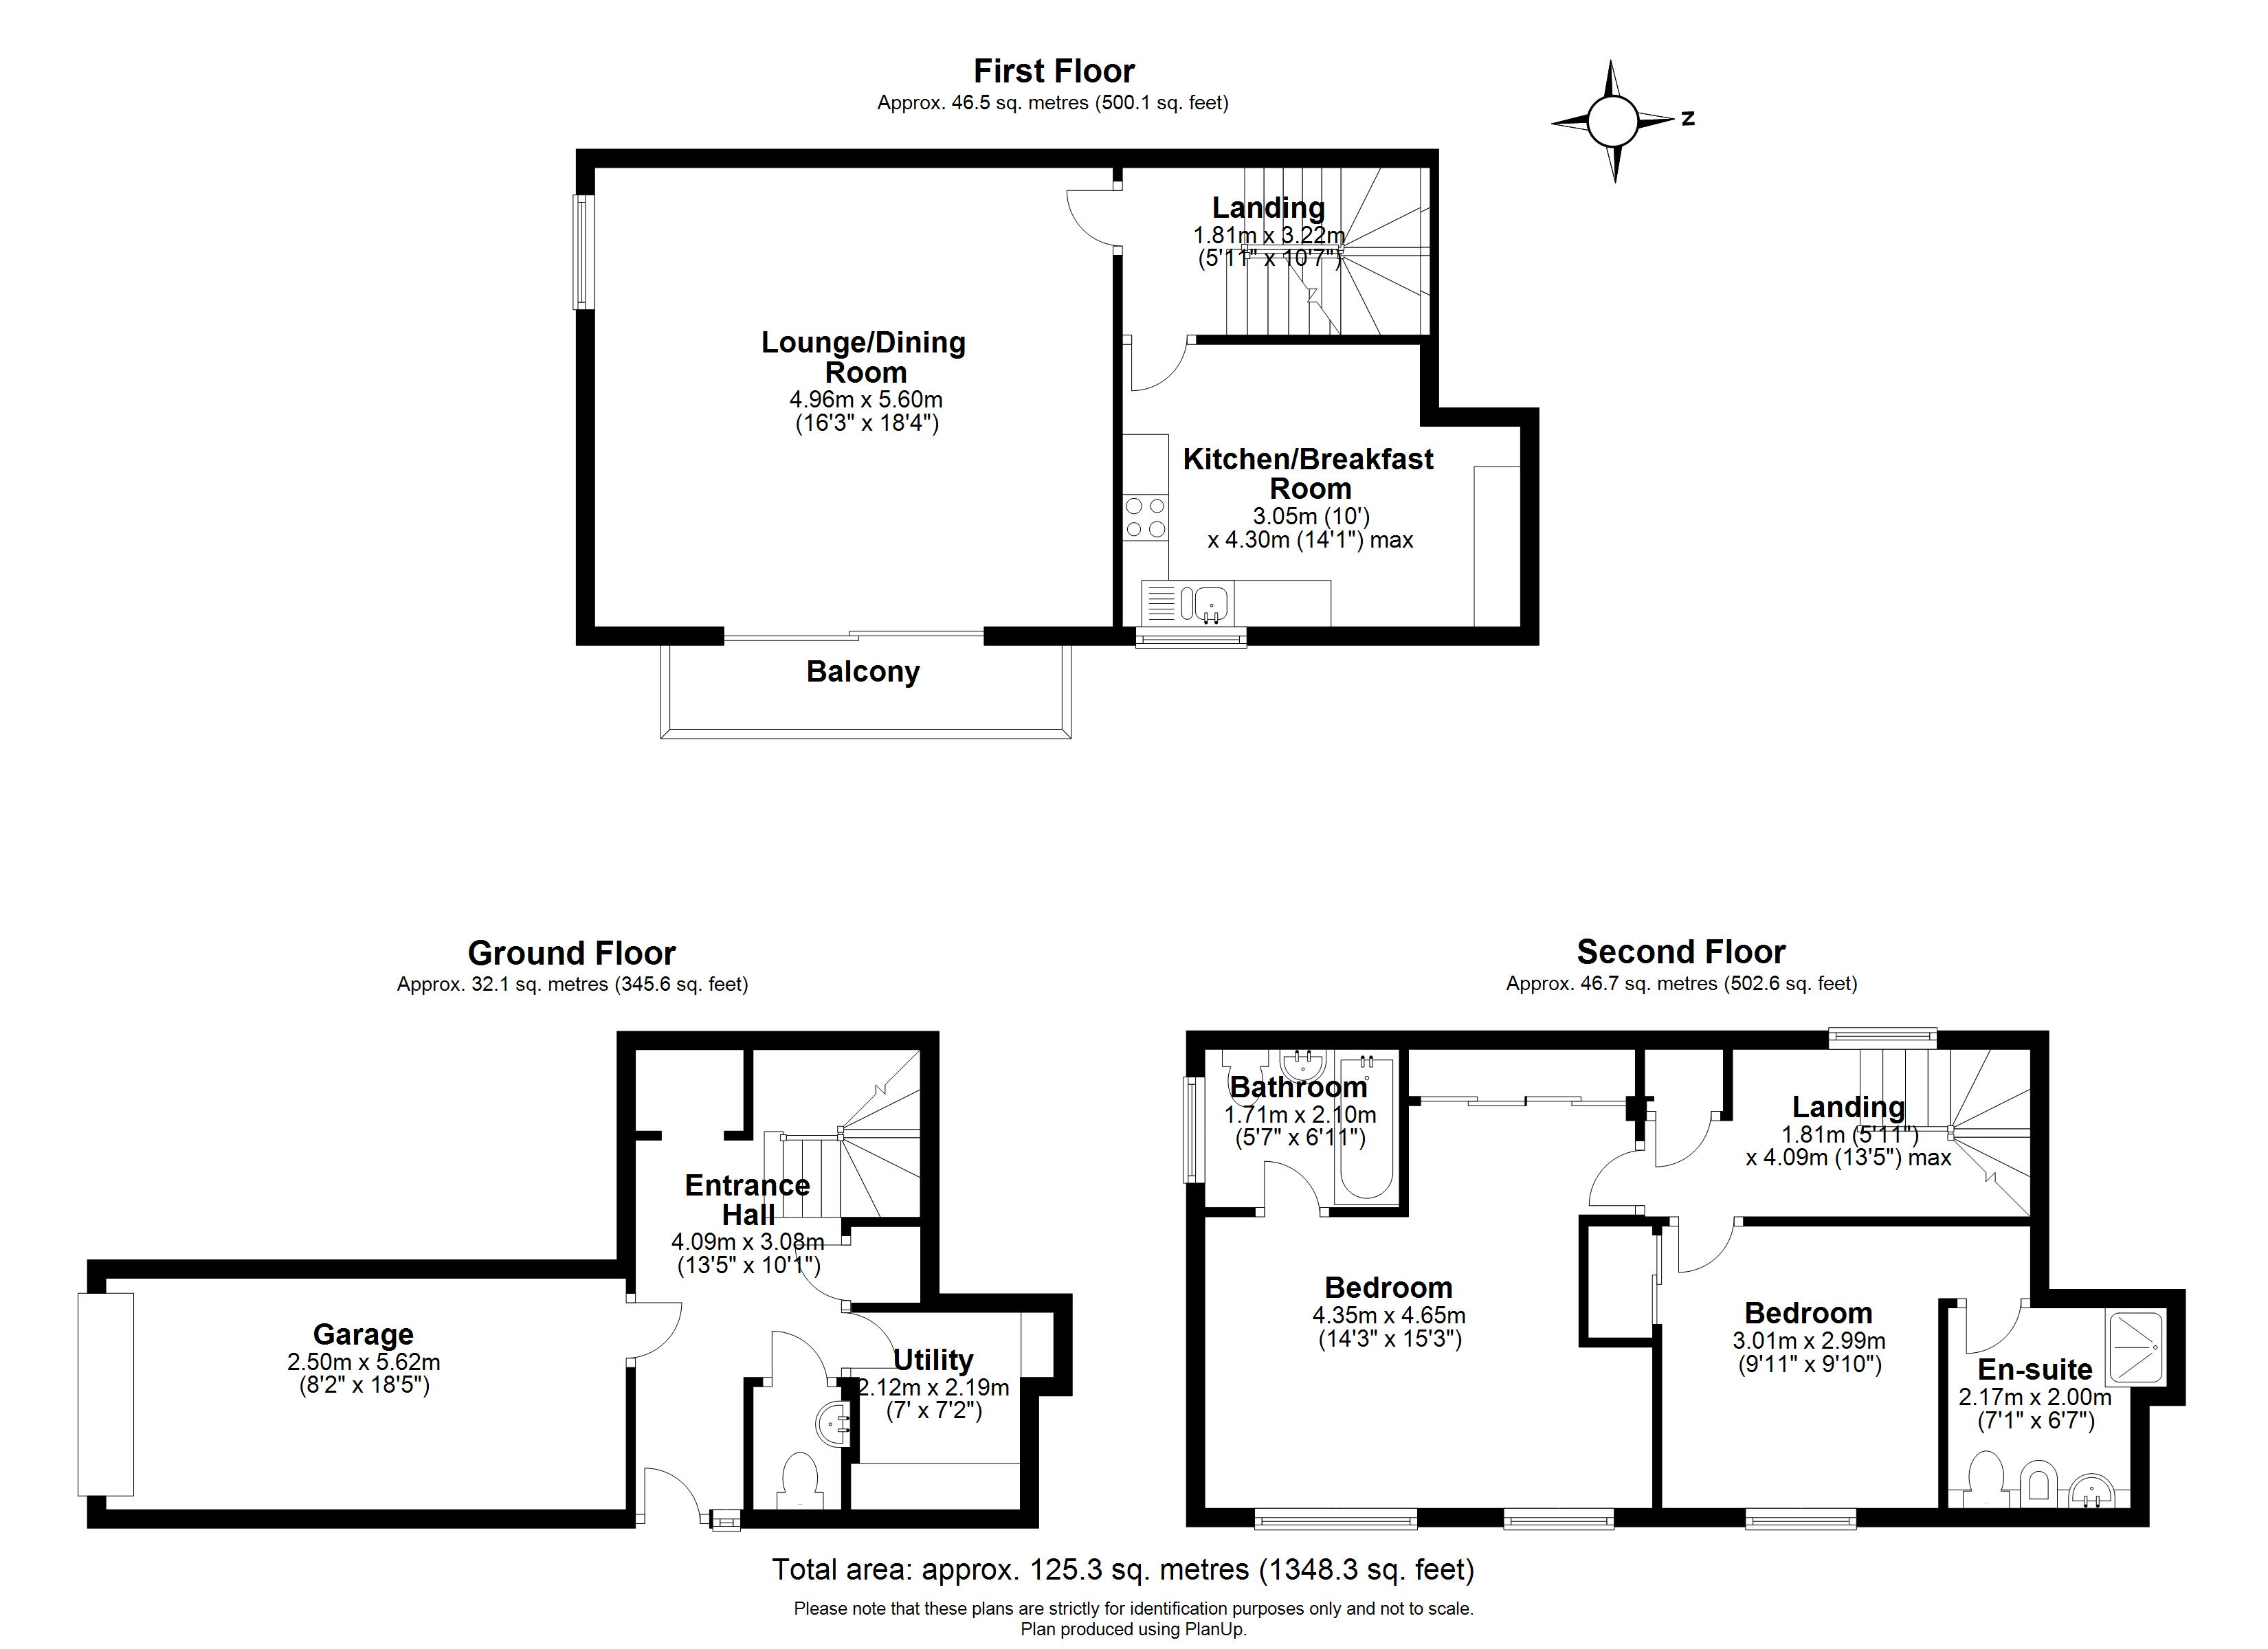 Floorplans For Chantry Place, King Stable Street, Eton, Windsor